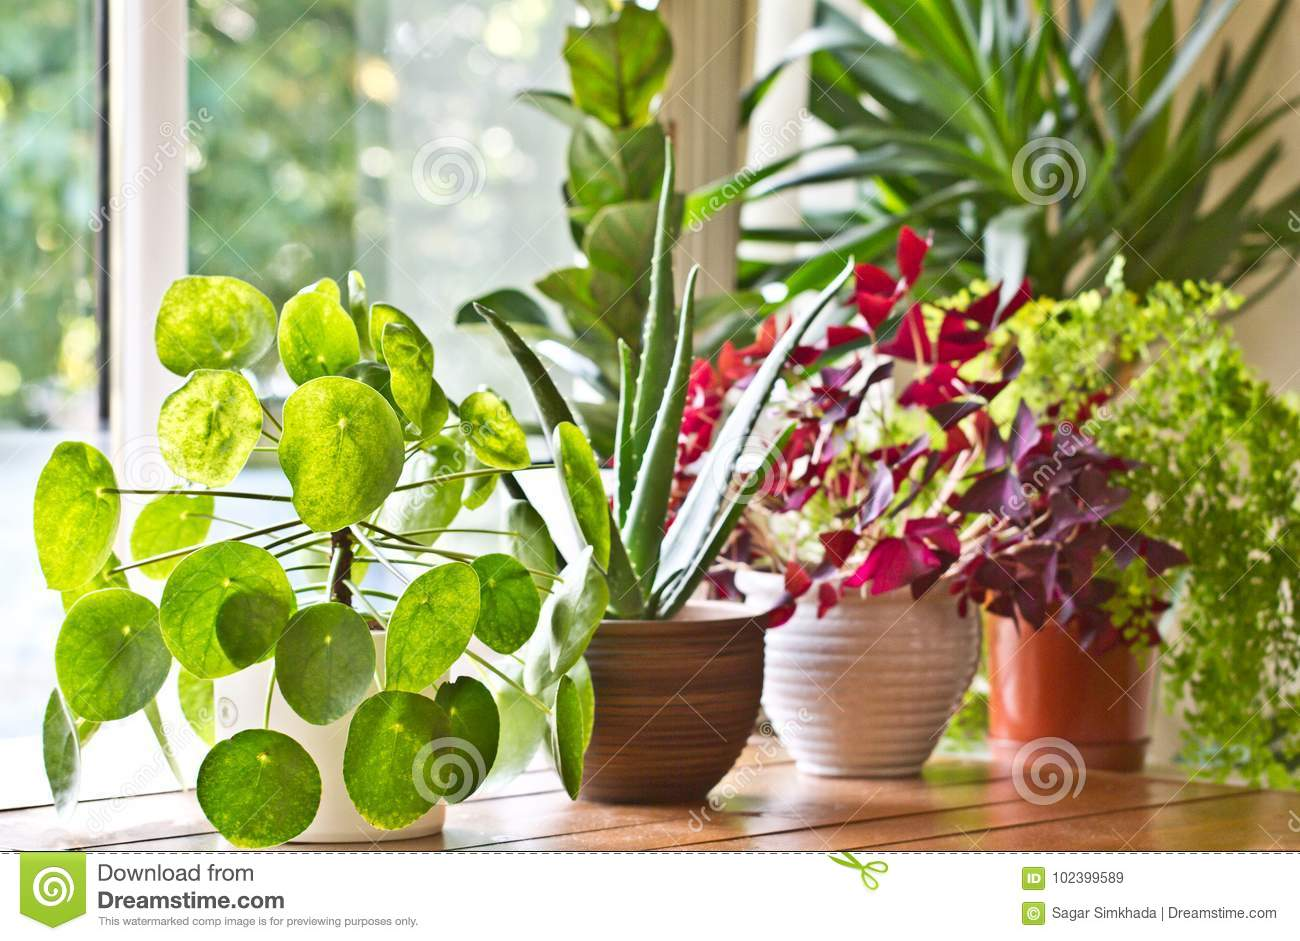 Houseplants display. House plants or indoor plants